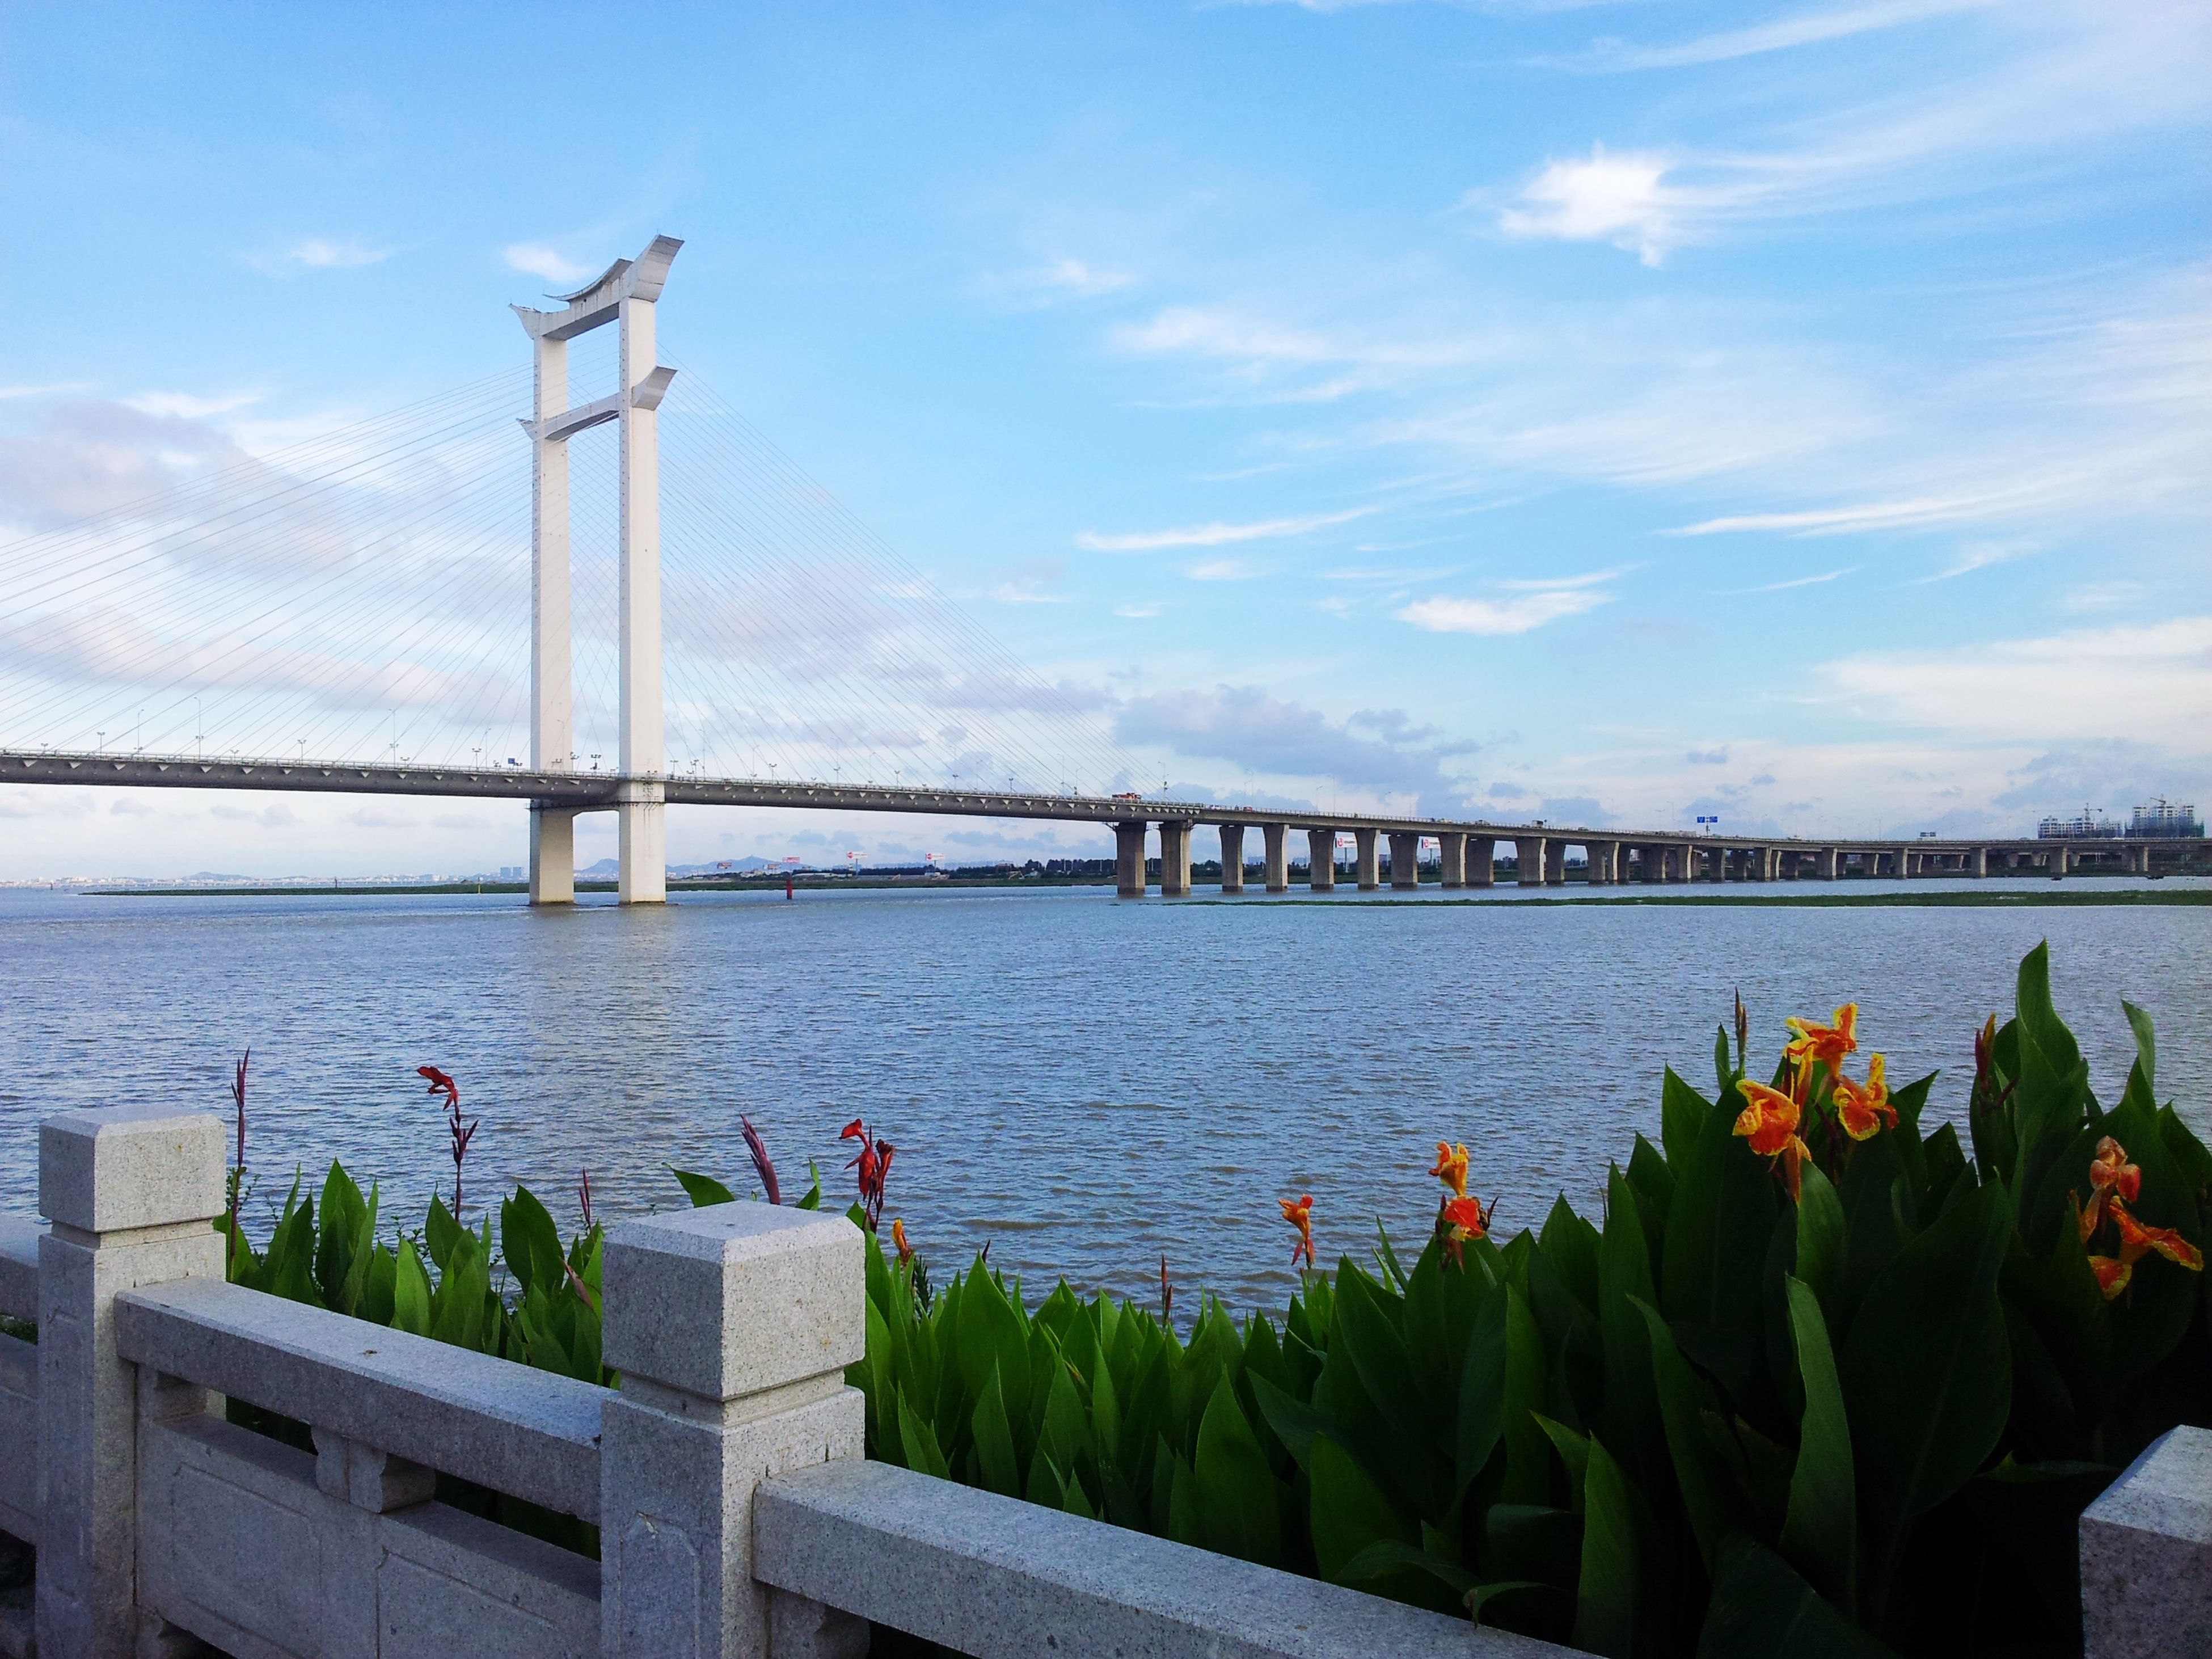 water, built structure, architecture, sky, flower, bridge - man made structure, railing, connection, plant, sea, river, nature, cloud - sky, building exterior, day, outdoors, cloud, beauty in nature, growth, street light